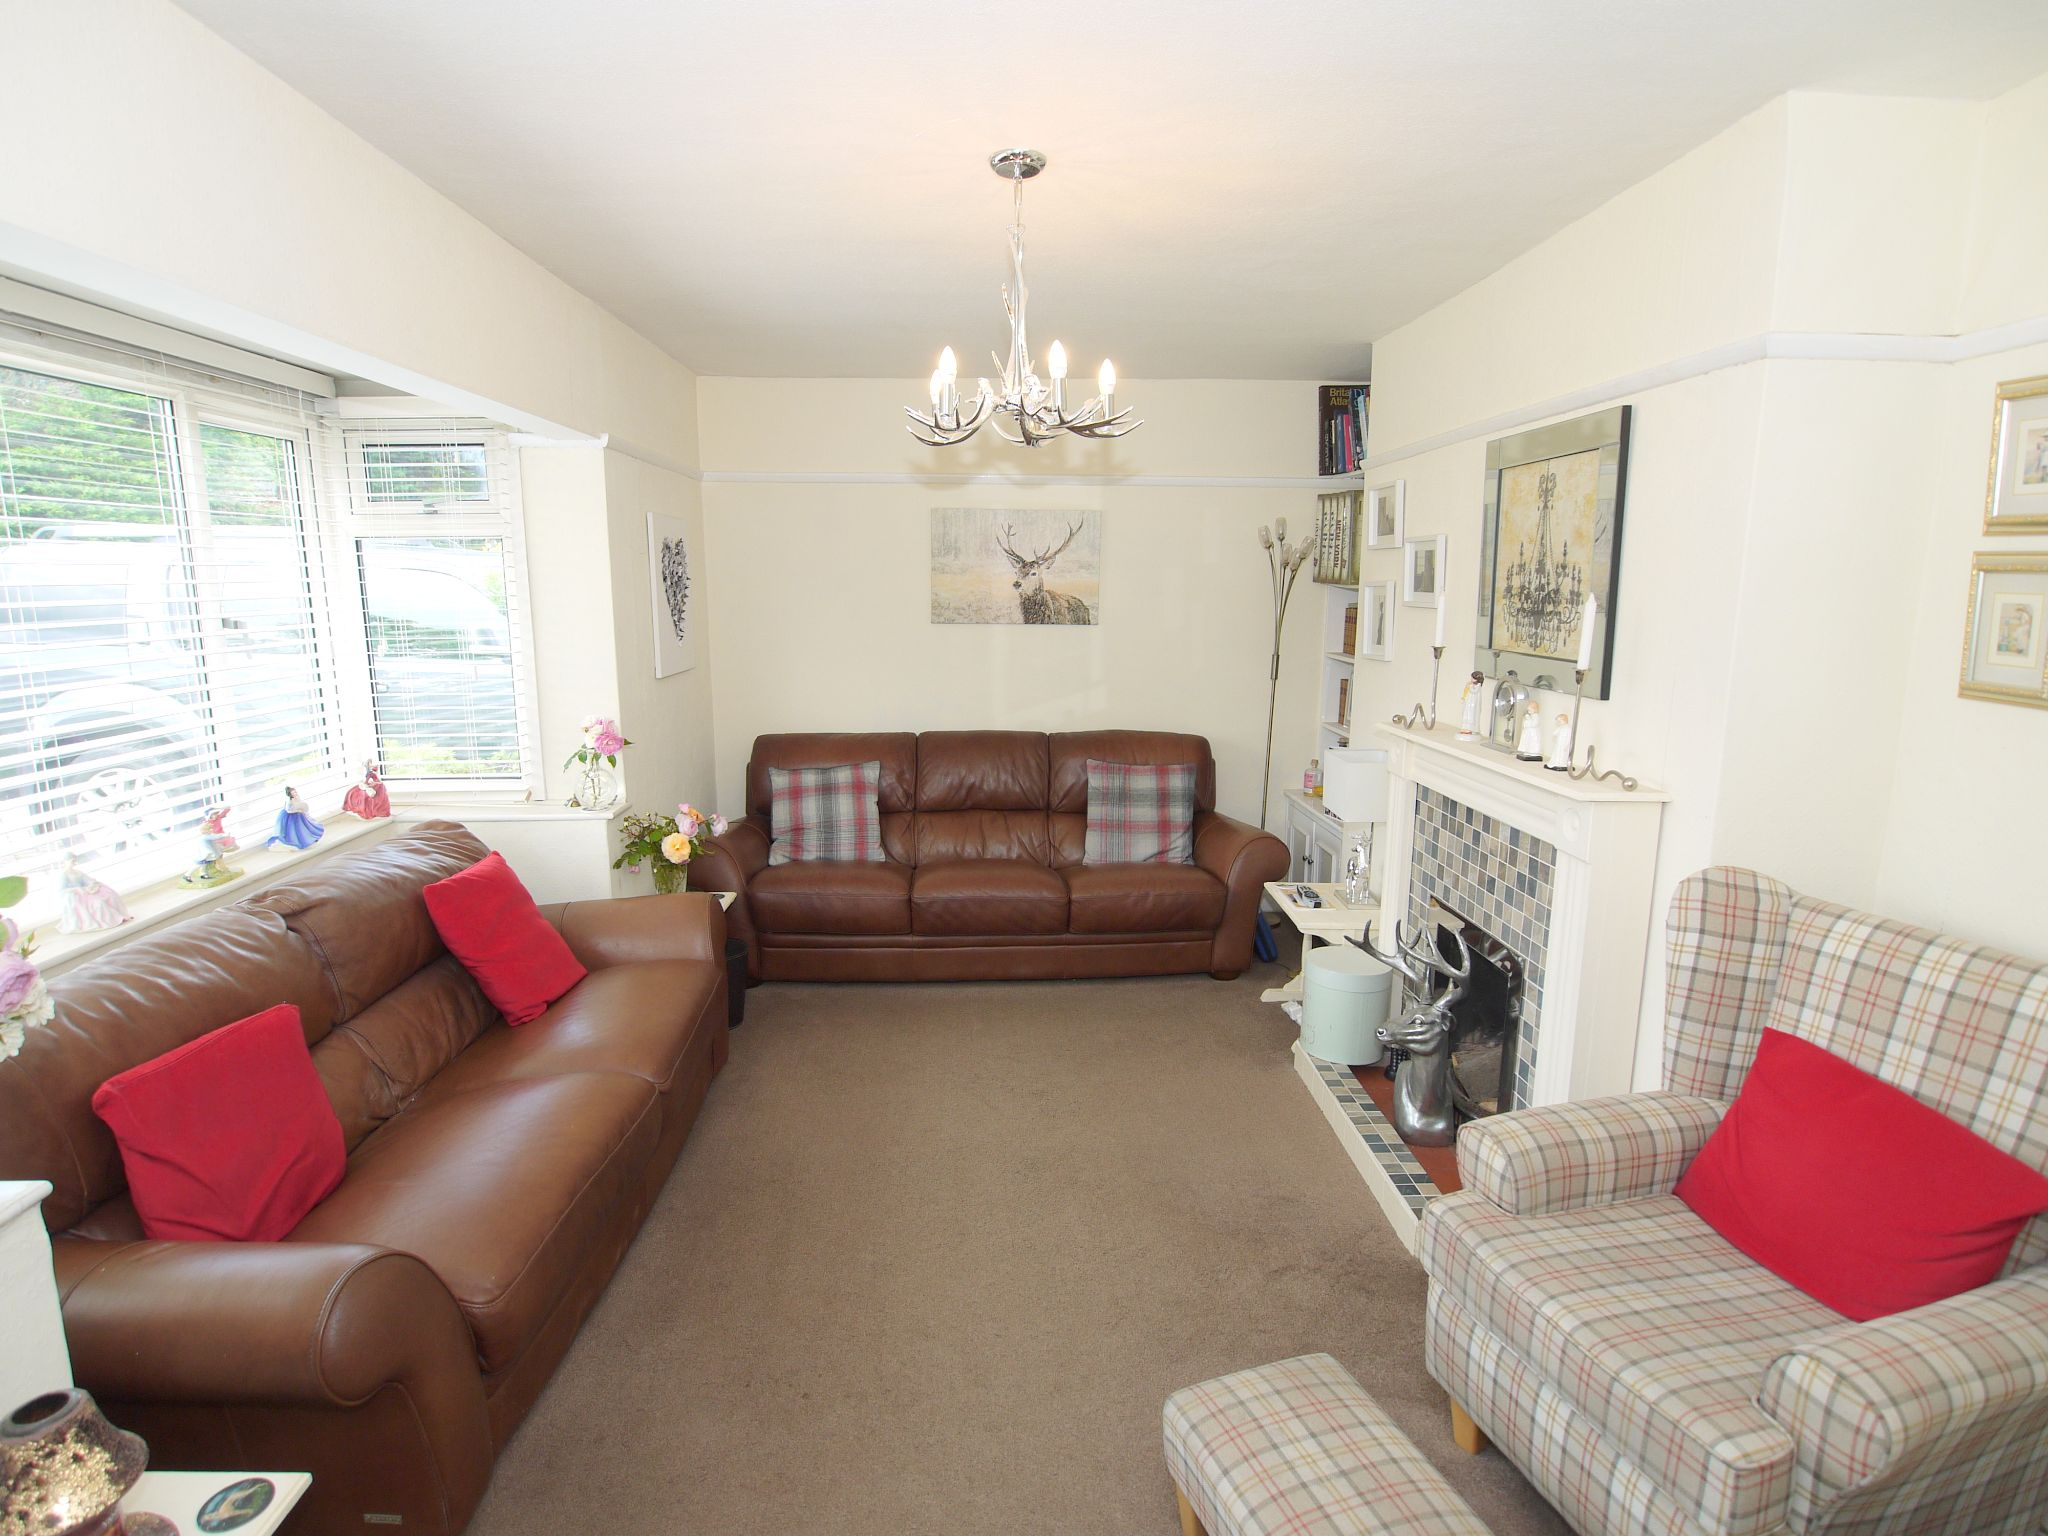 3 bedroom detached house For Sale in Sevenoaks - Photograph 3